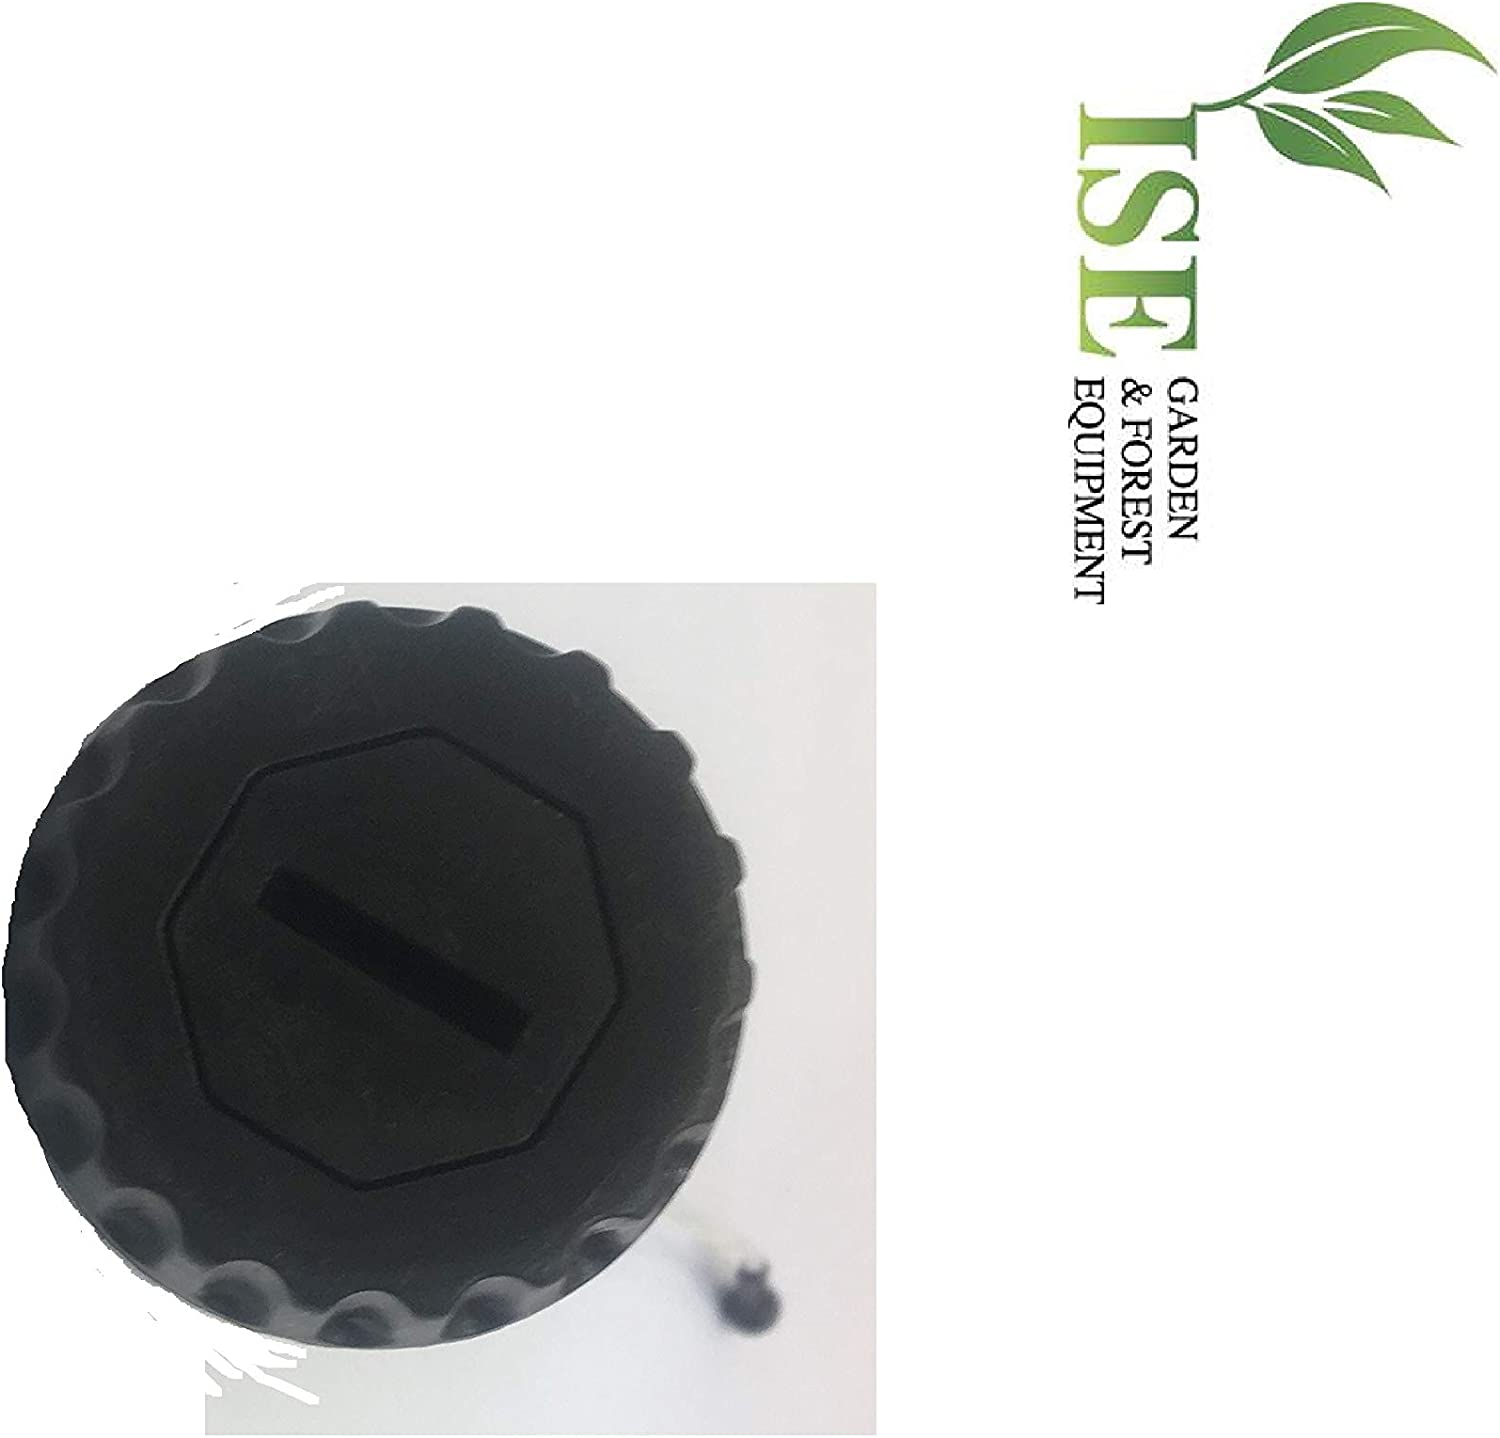 0000 350 0520 ISE/® Replacement Oil Tank Cap for Stihl MS290 Replaces Part Number 1117 350 0500